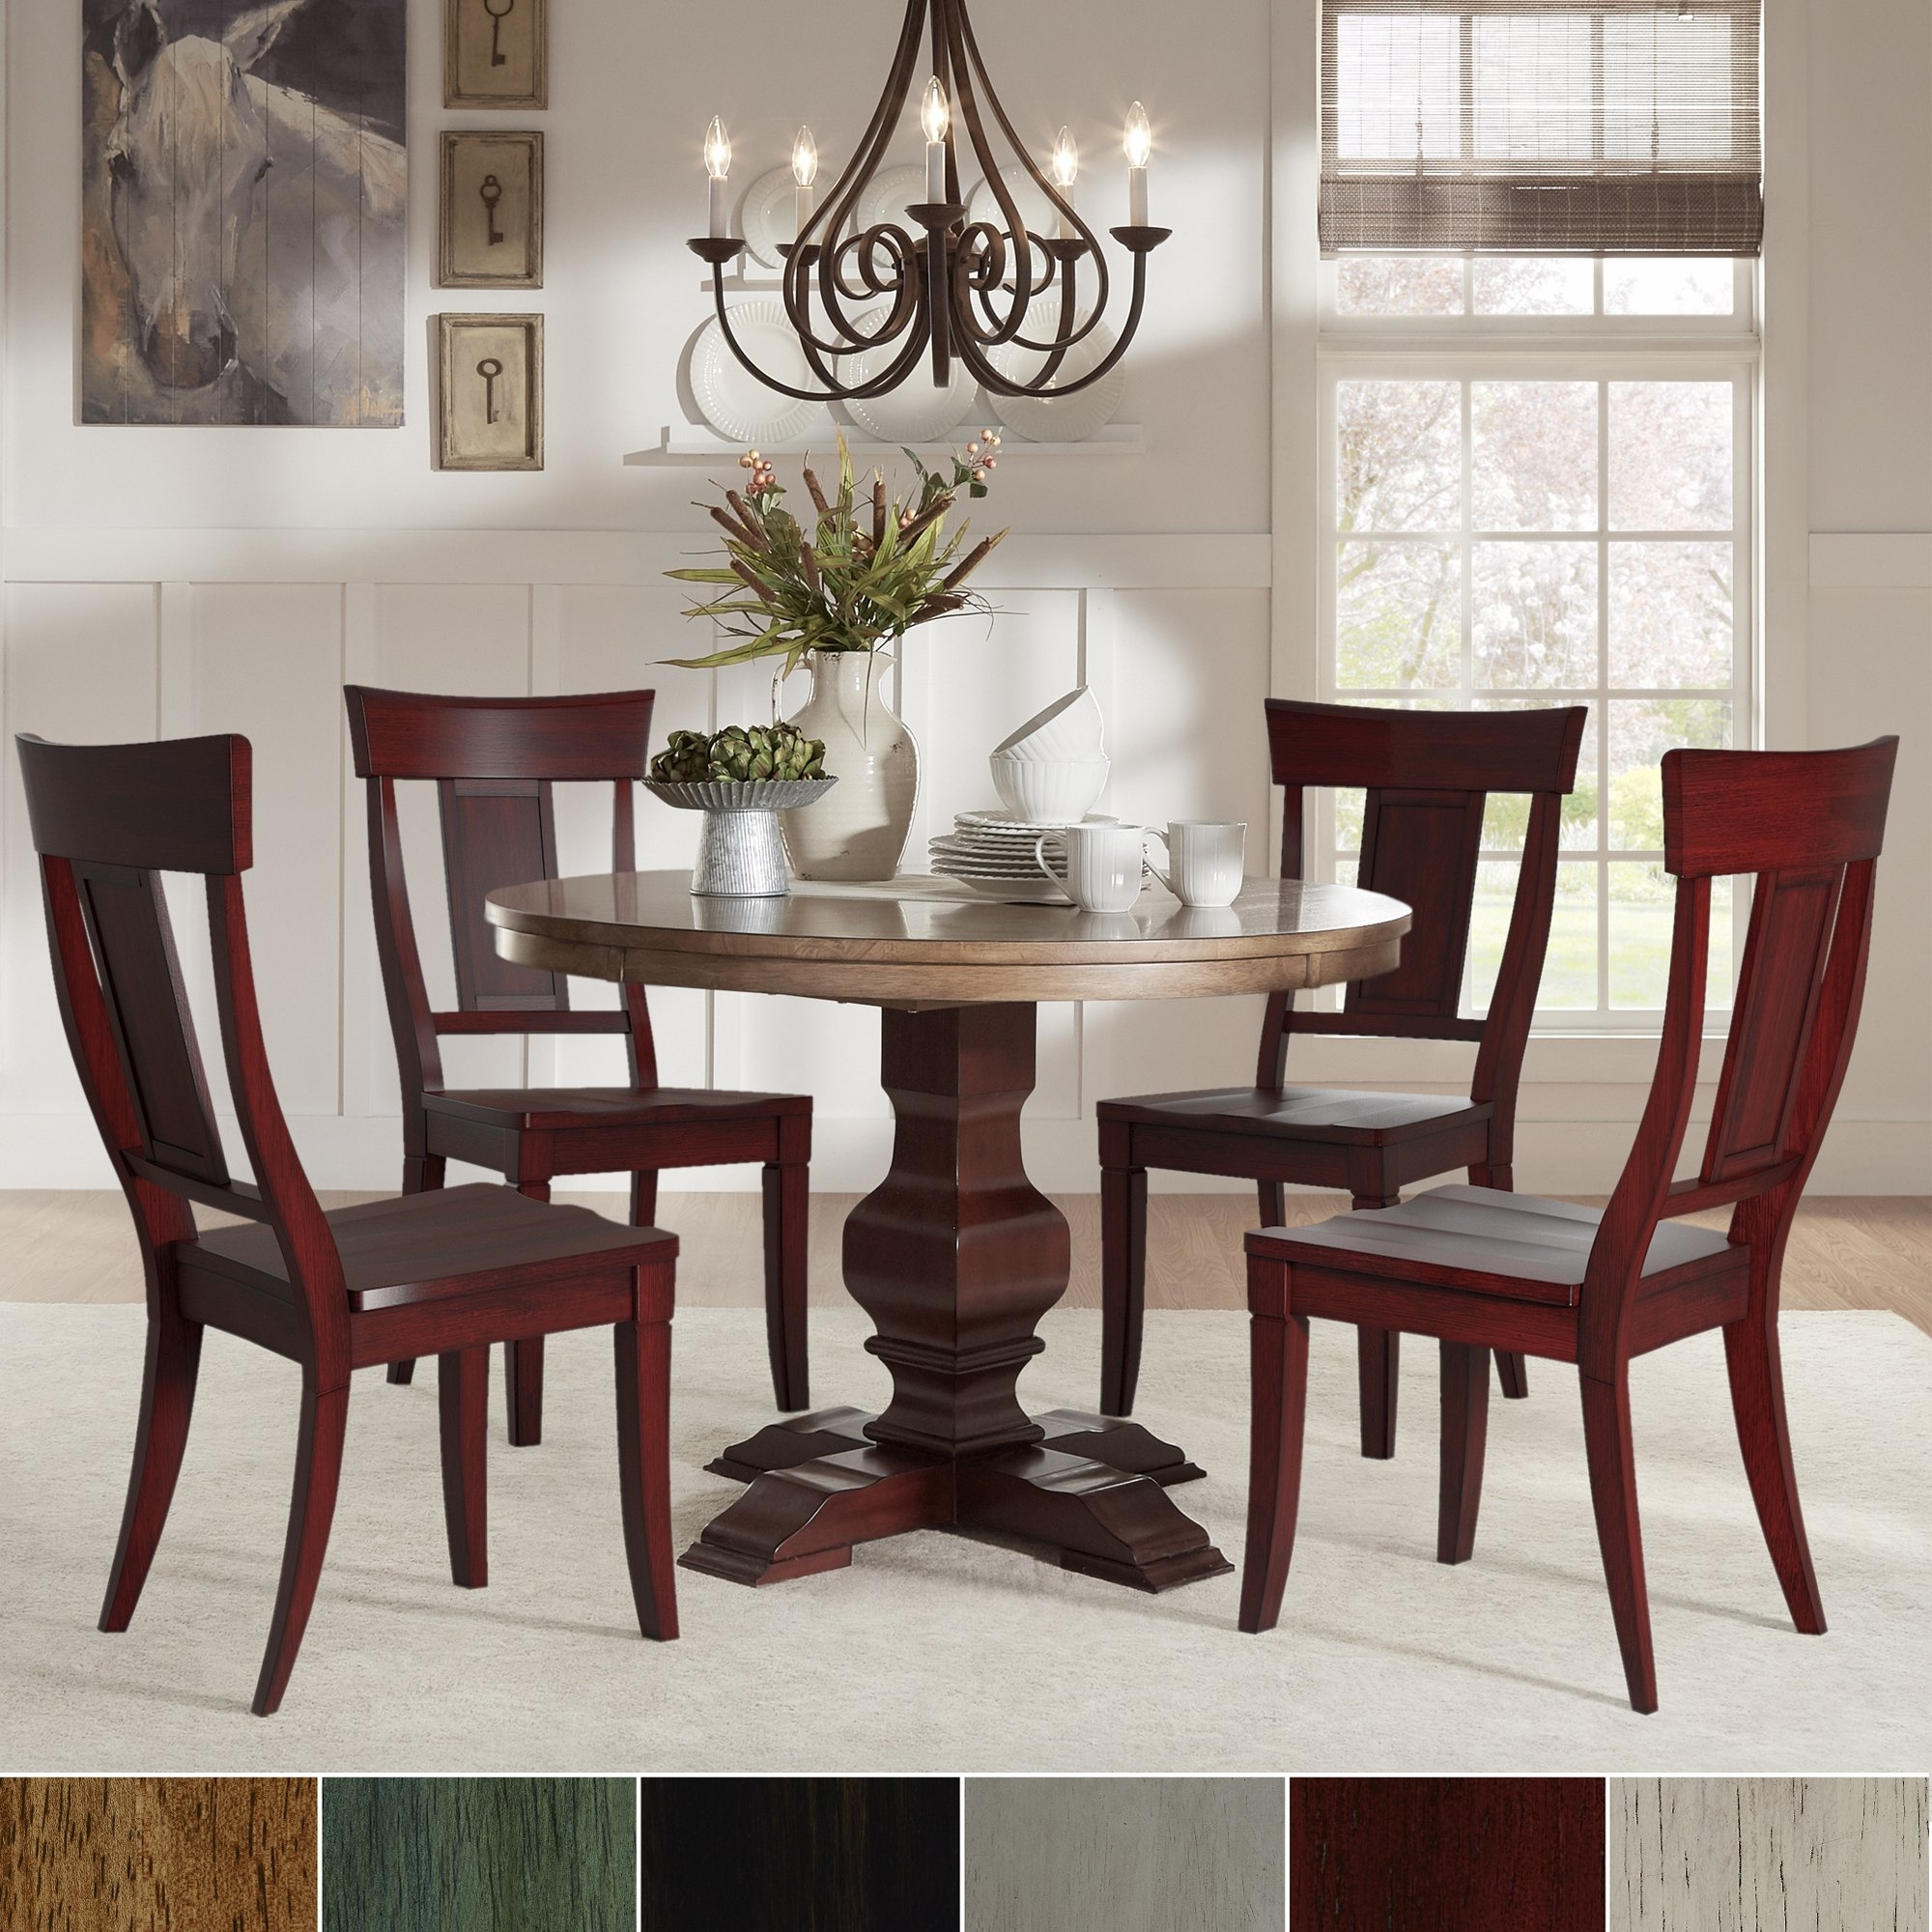 Eleanor Red Round Solid Wood Top 5 Piece Dining Set – Panel Back For Newest Caden 5 Piece Round Dining Sets (Photo 9 of 20)